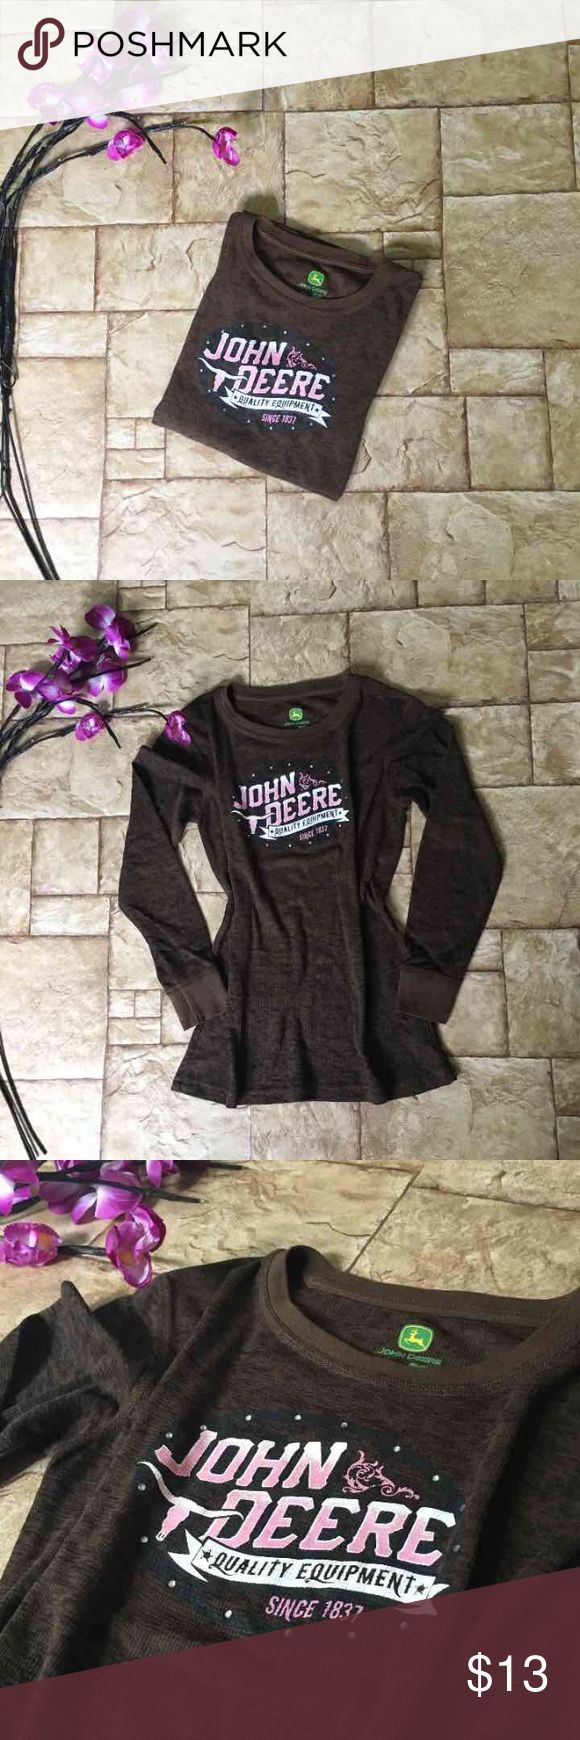 John Deere Top Worn once :) very beautiful! Bling rhinestones! Pink logo. John Deere brand! Purchased at Cabelas!  Please check out my other listings for more name brand items ❤️ John Deere Tops Tees - Long Sleeve